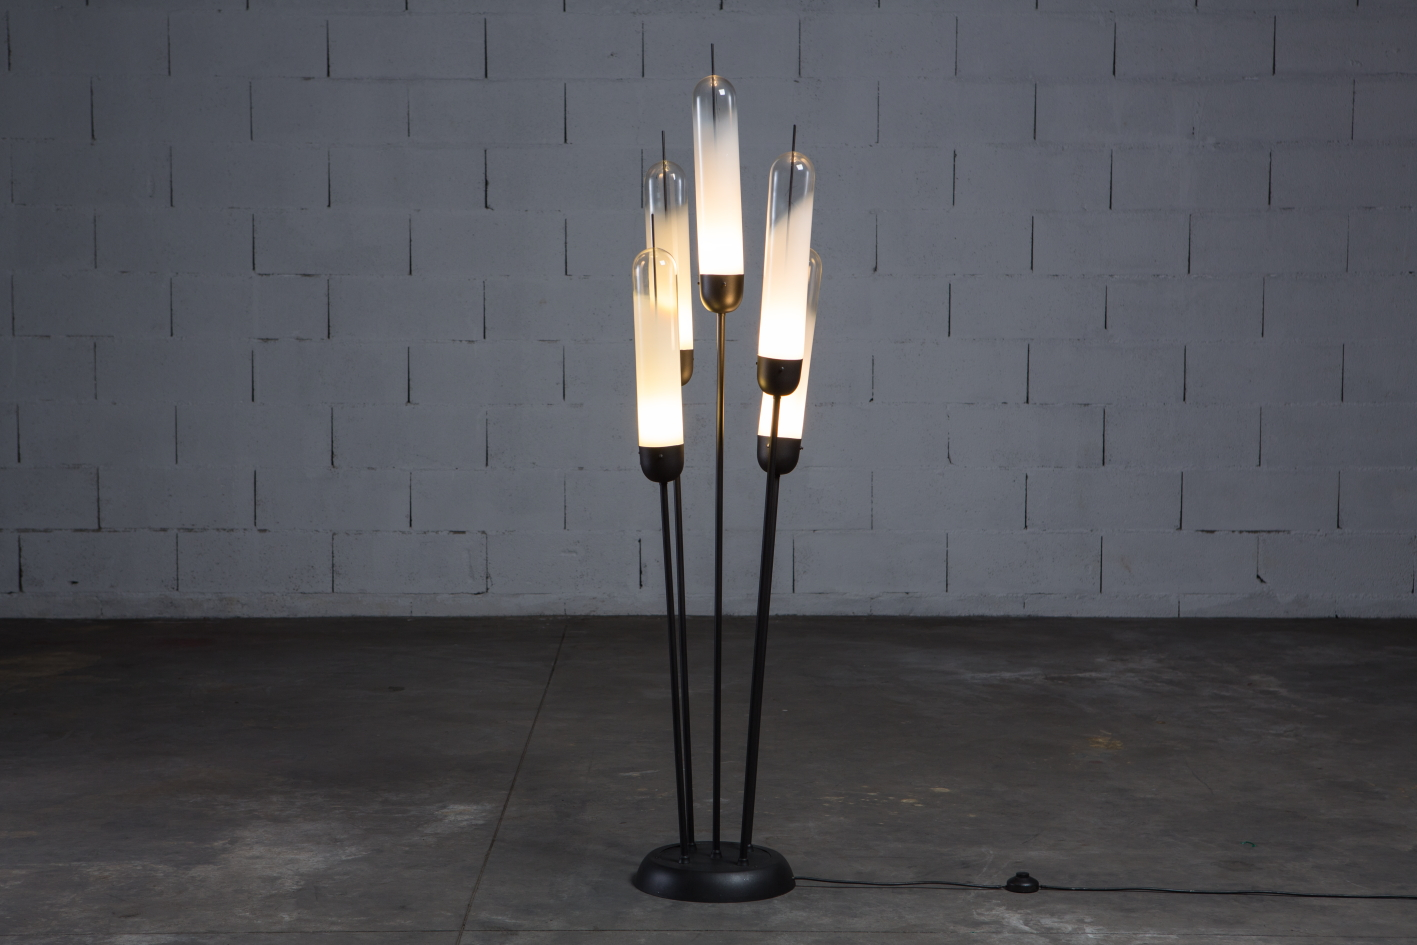 A glass and metal Floor lamp - Mazzega 1970s - Lights on